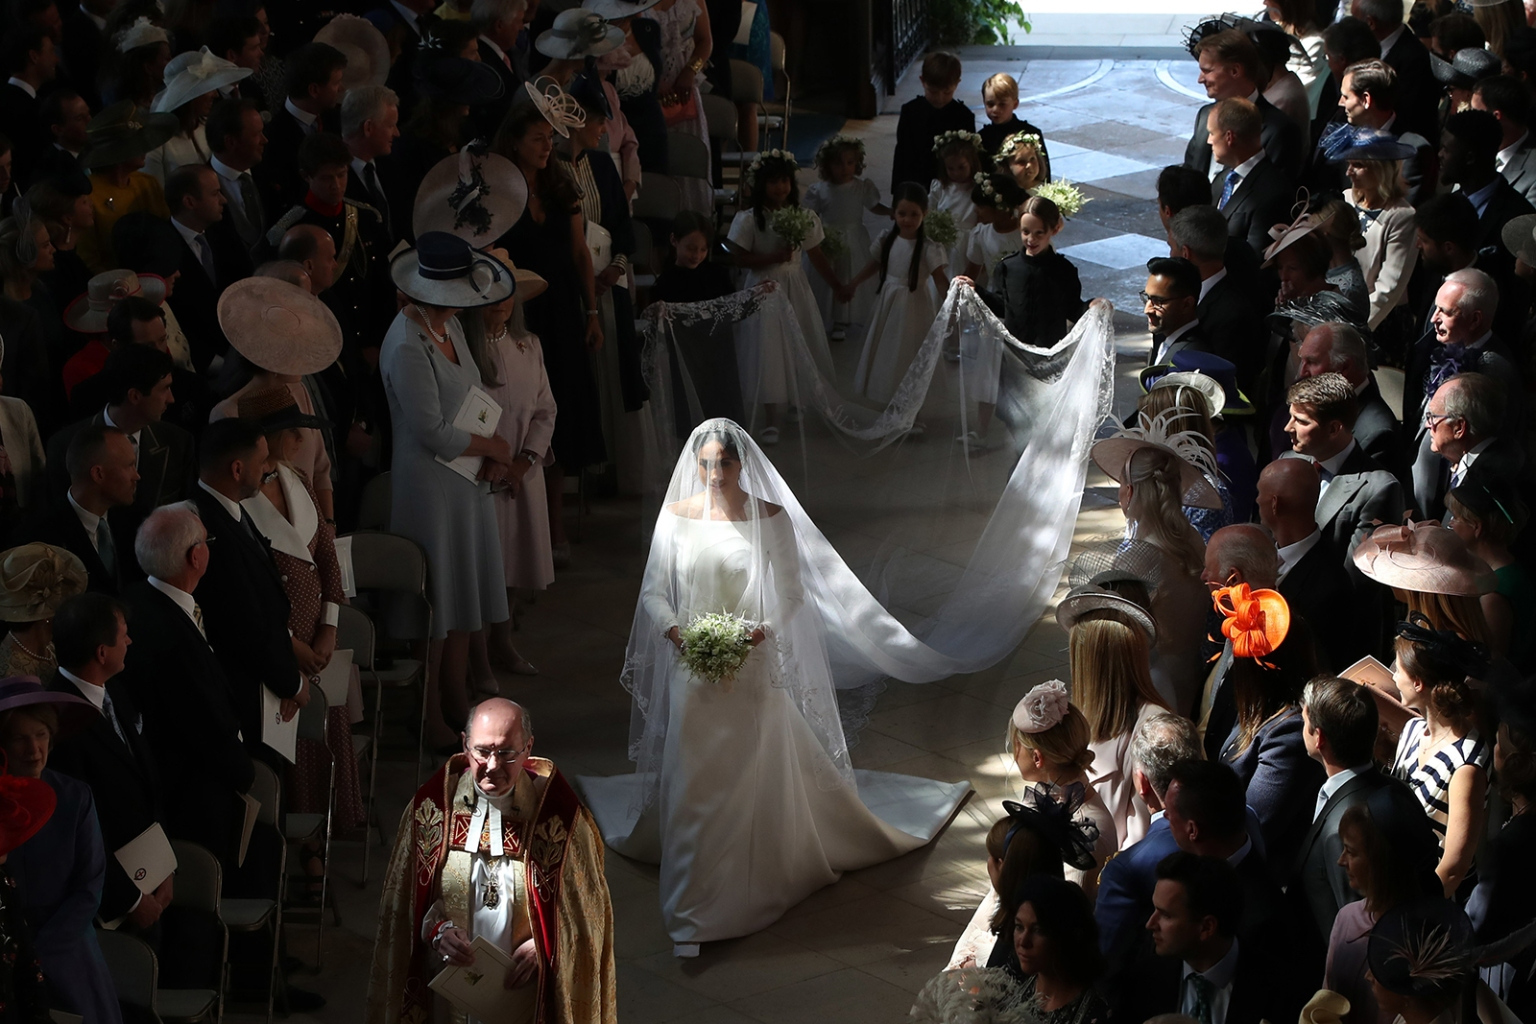 Meghan Markle walks down the aisle of St George's Chapel at Windsor Castle for her wedding to Britain's Prince Harry in Windsor, England, on on May 19. Danny Lawson/Getty Images